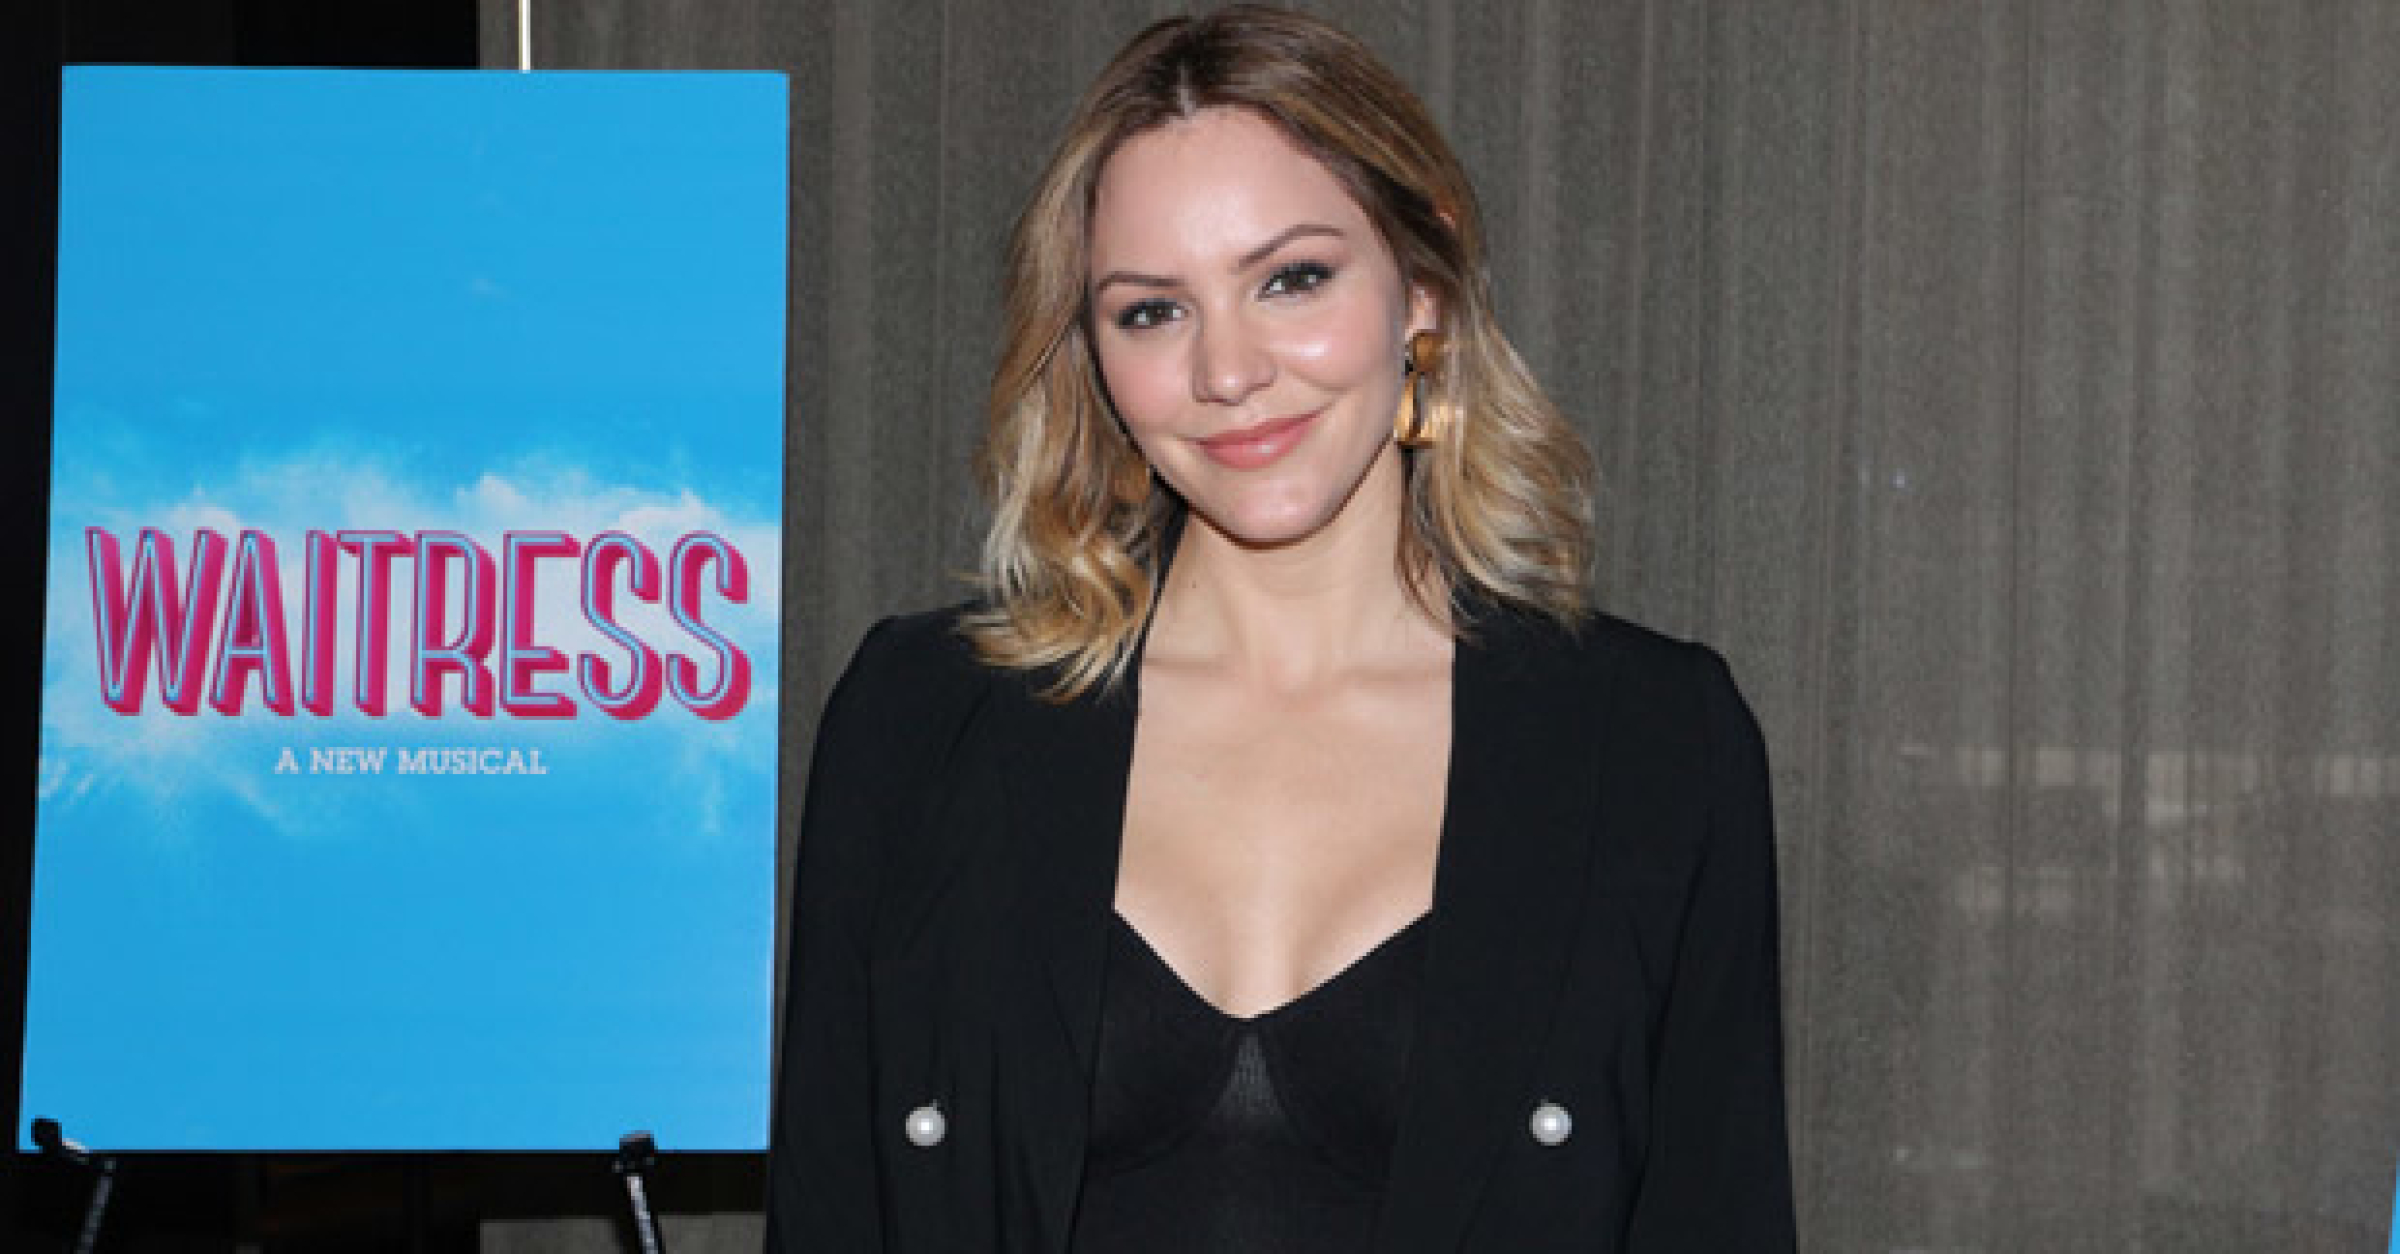 Katharine Mcphee And Waitress Cast To Sing Sara Bareilles Songs In Bc Efa Event Theatermania